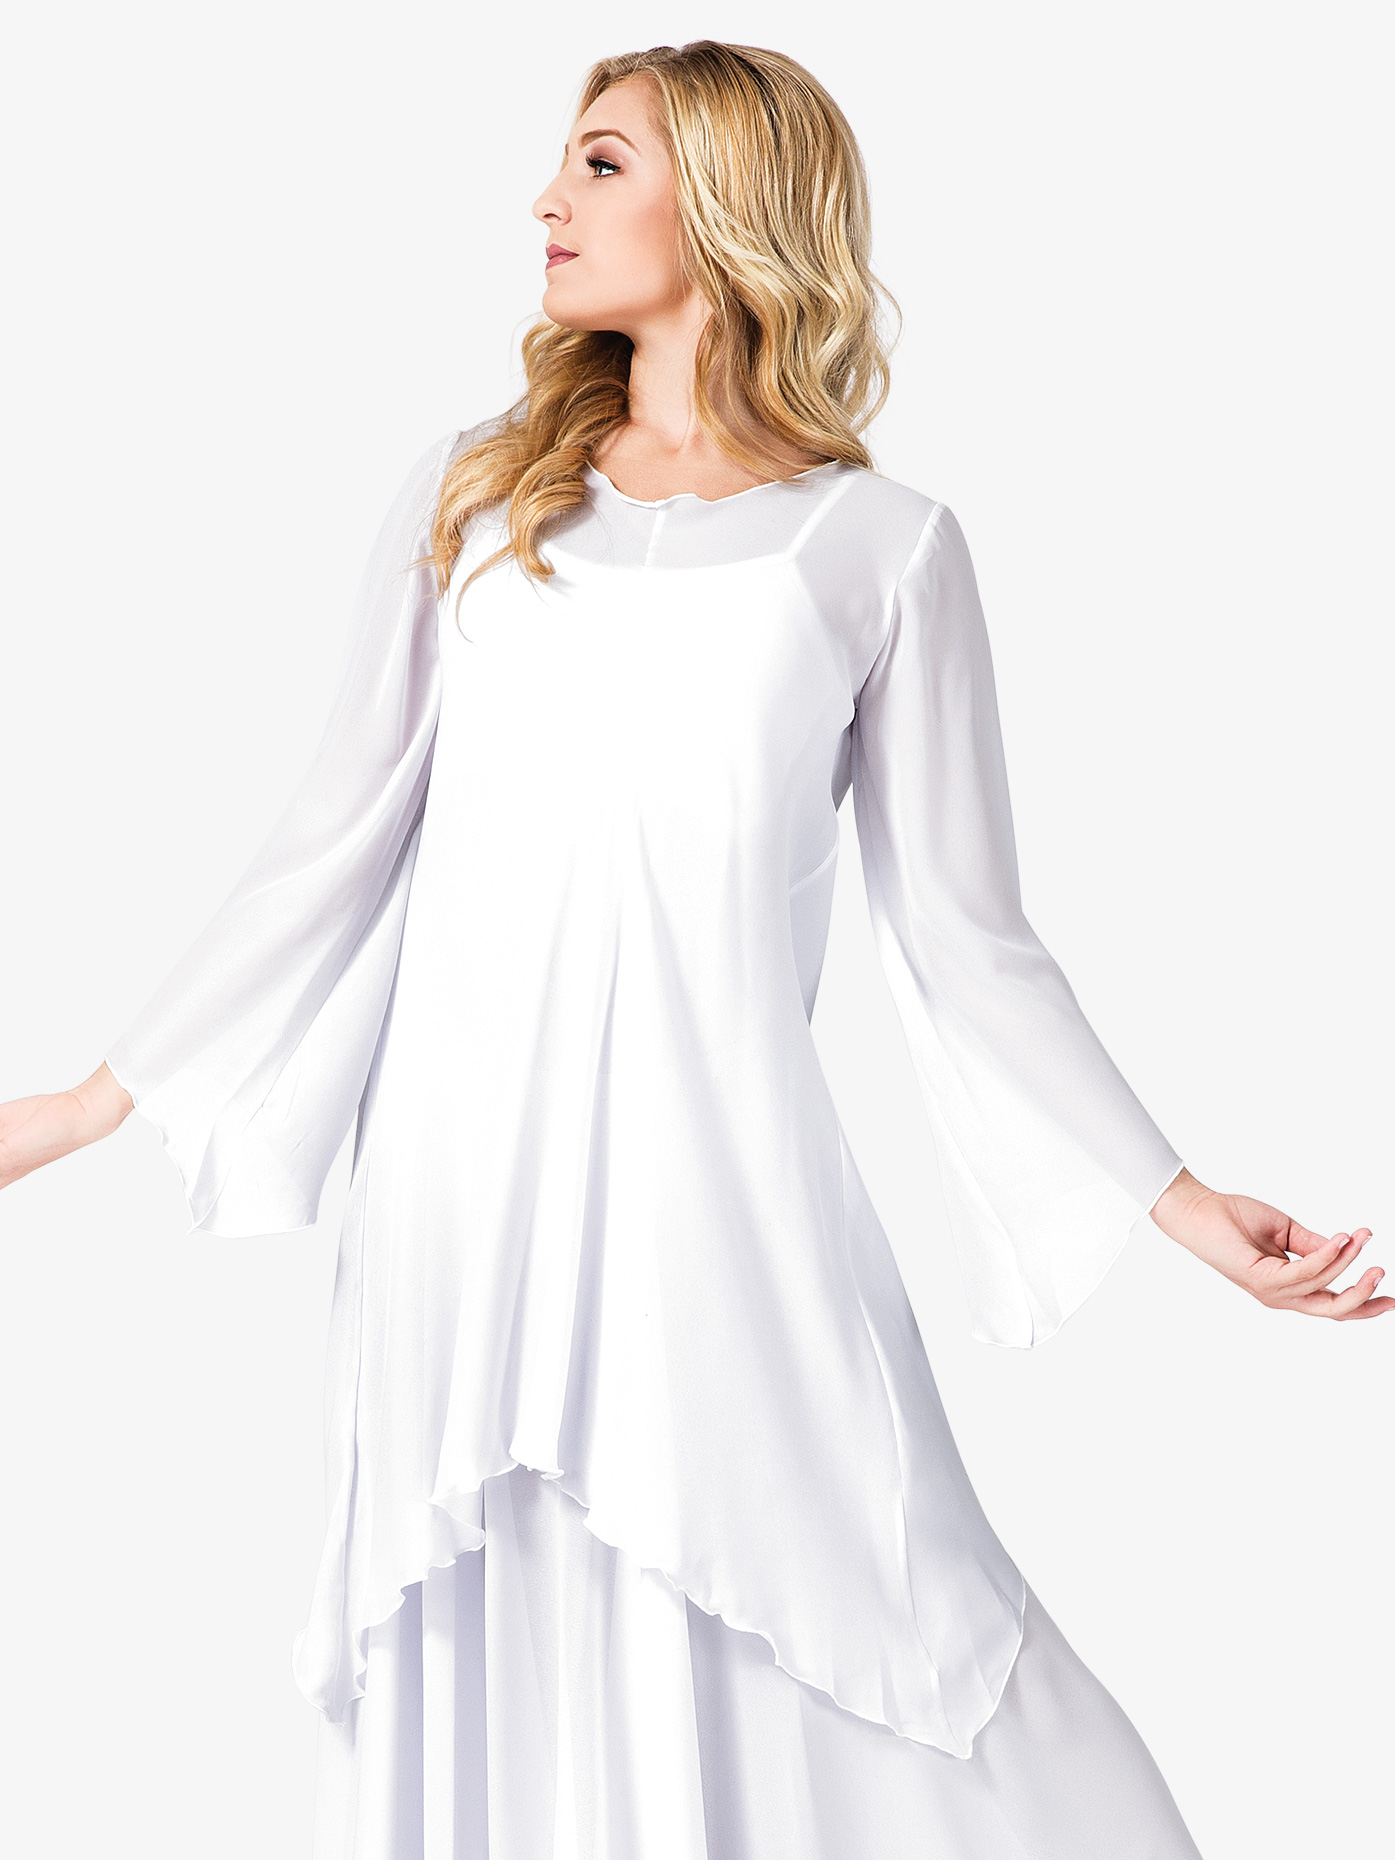 Watercolour Women's Worship Long Sleeve White Tunic WC101WHT